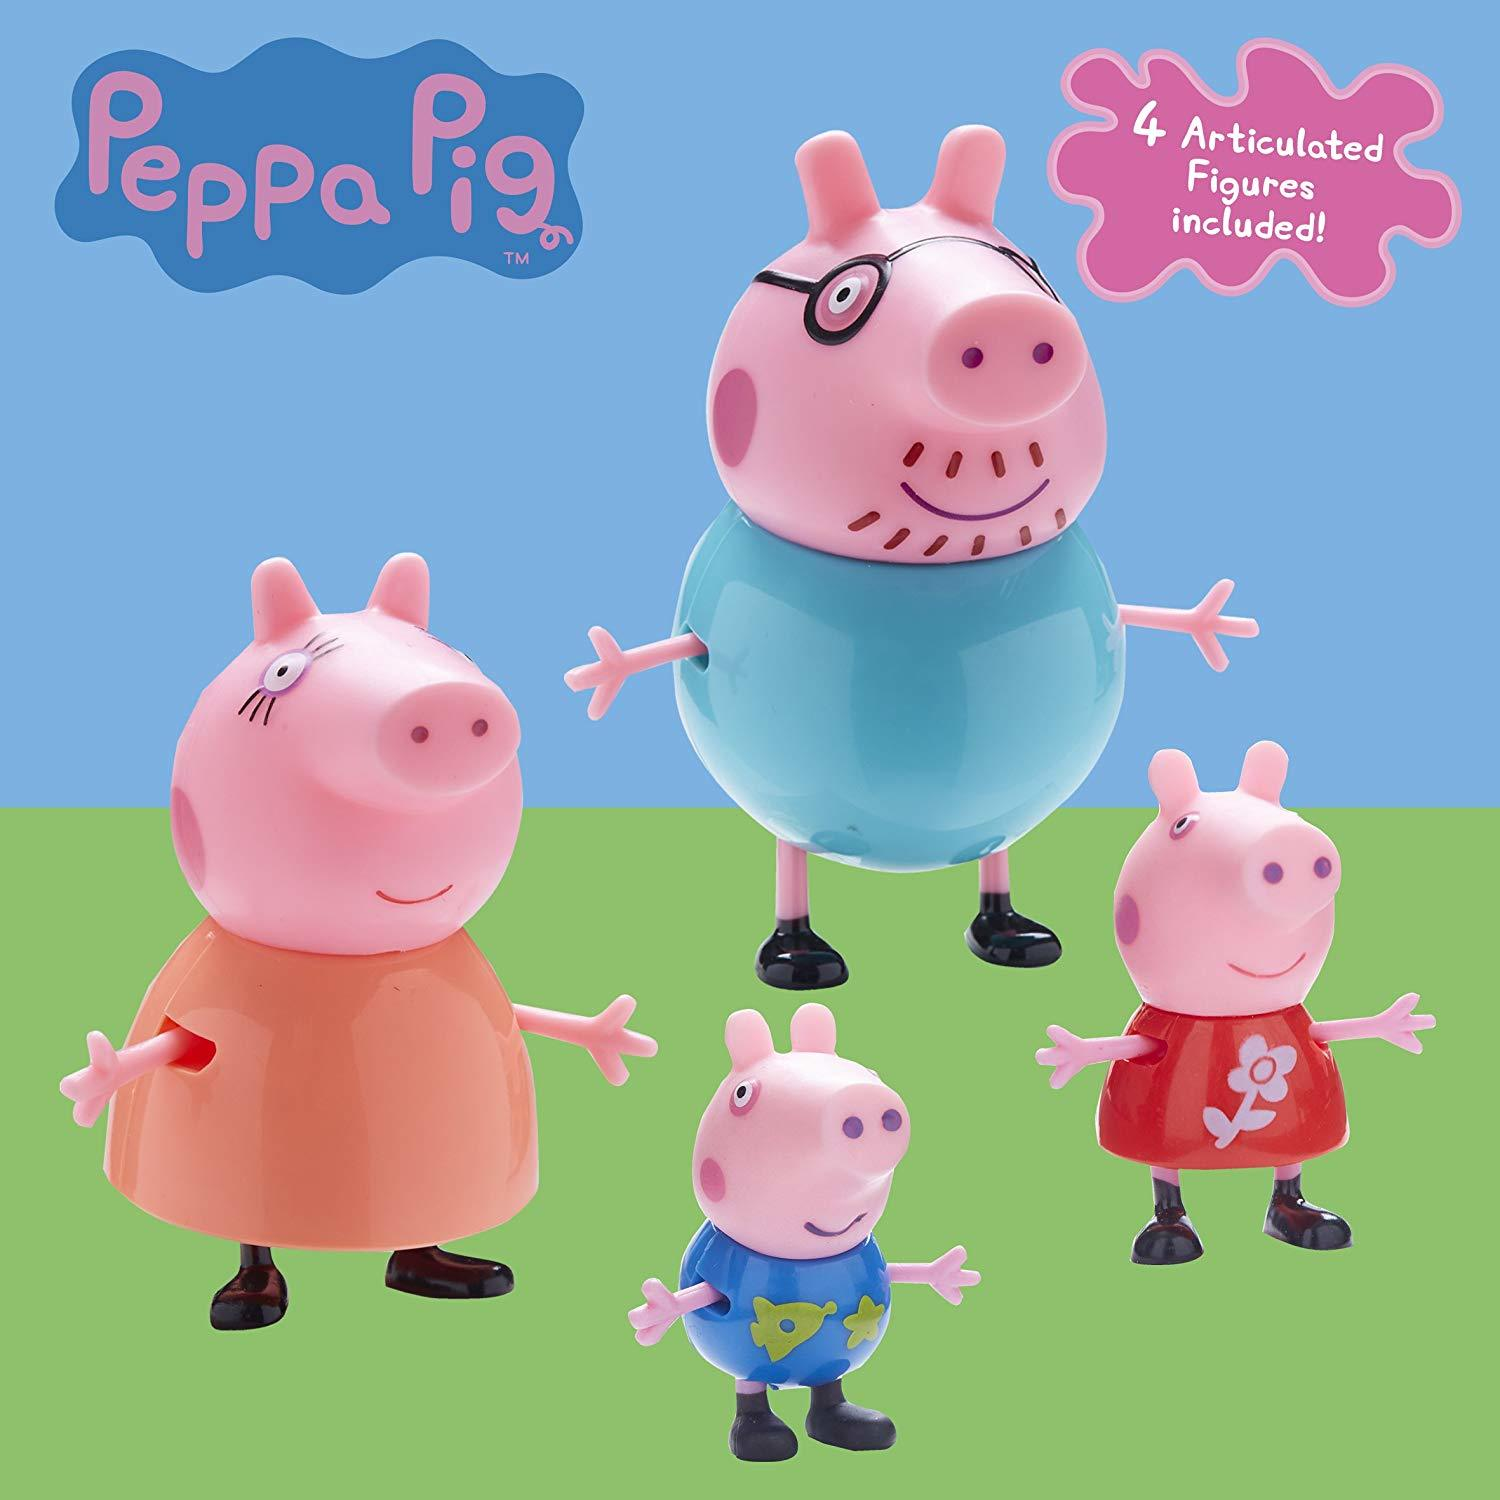 Peppa Pig - Family Figure Pack image